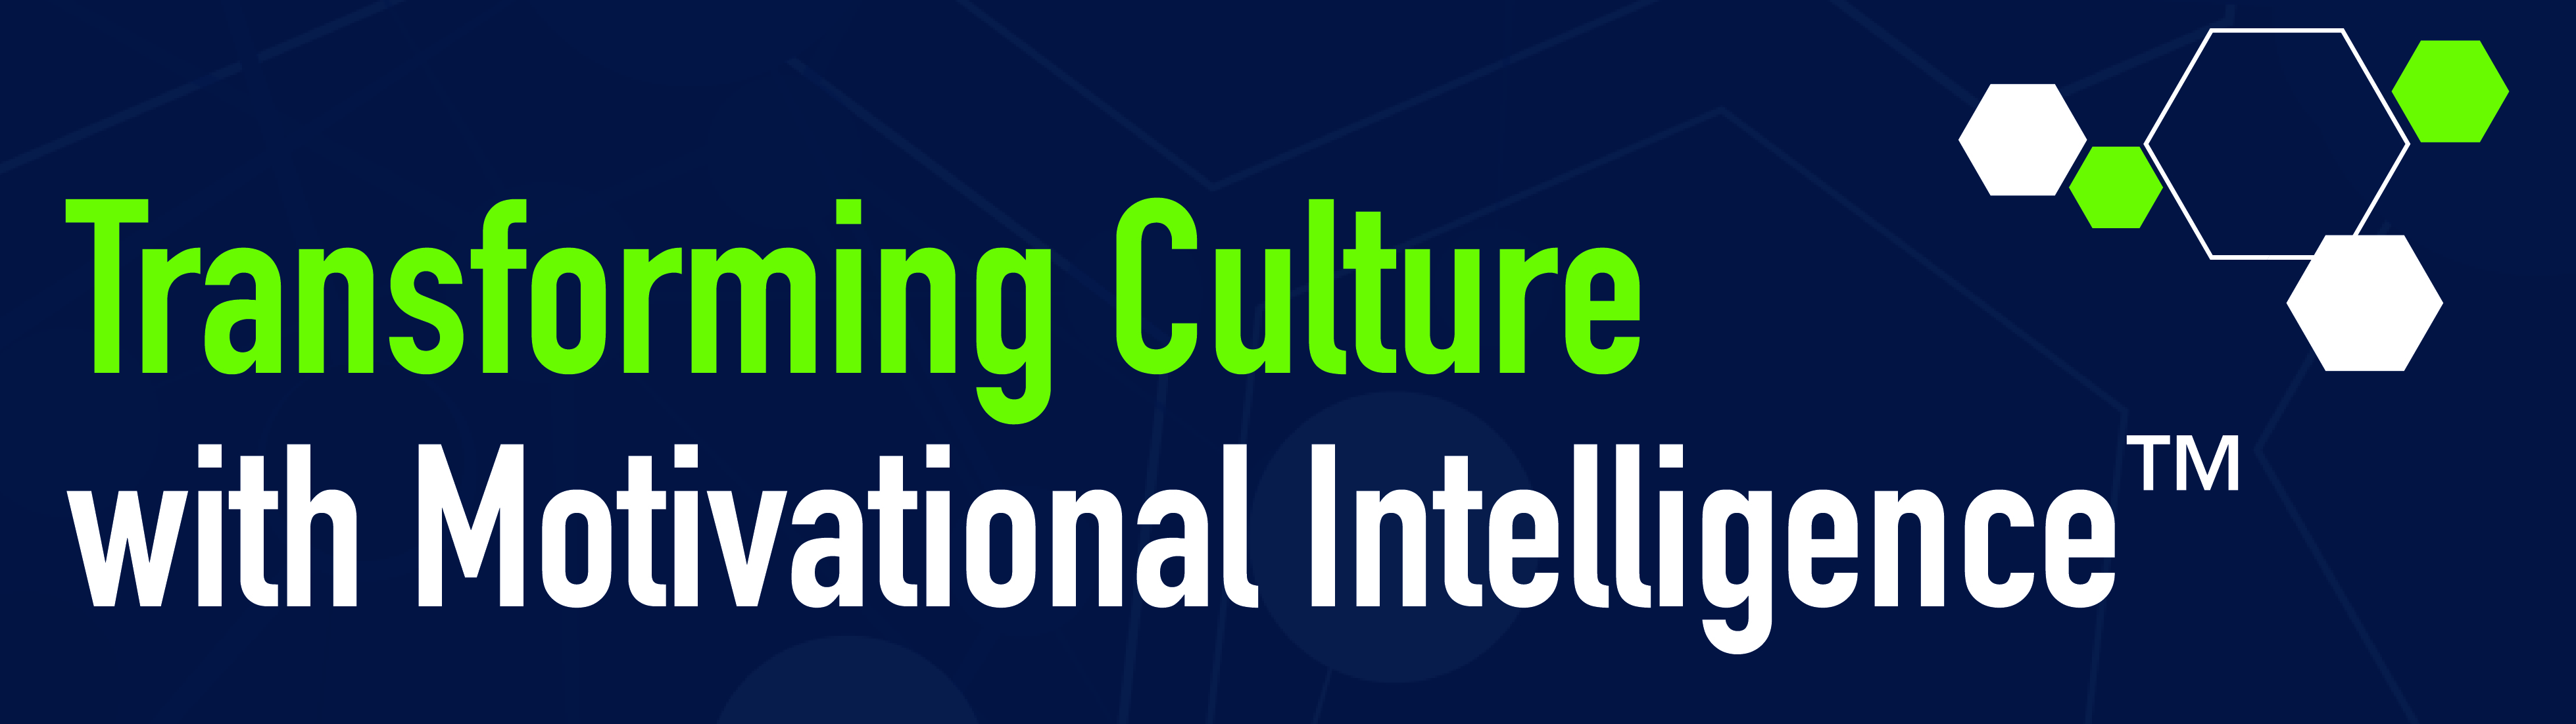 Transforming Culture with Motivational Intelligence™